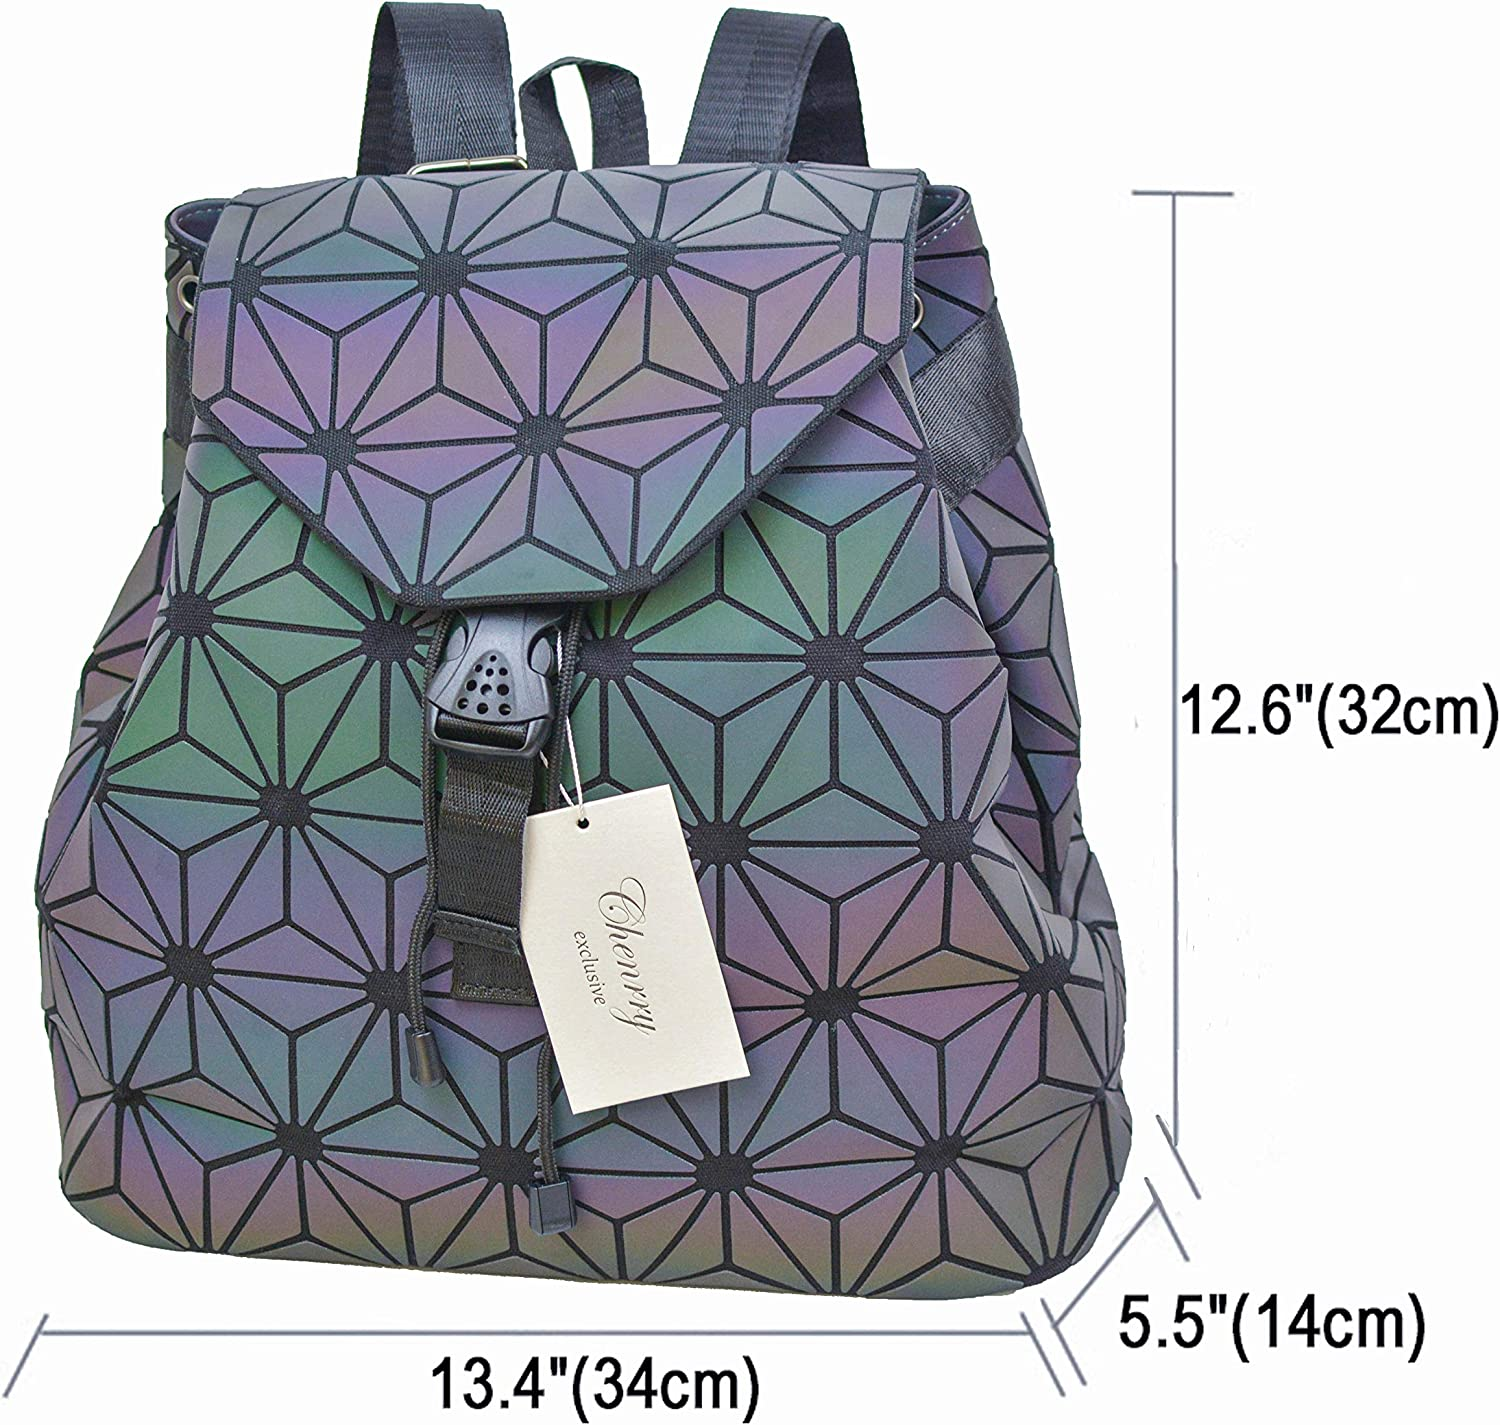 Geometric Backpack Luminous Backpacks Holographic Reflective Bag Lumikay Bags Irredescent Rucksack Rainbow